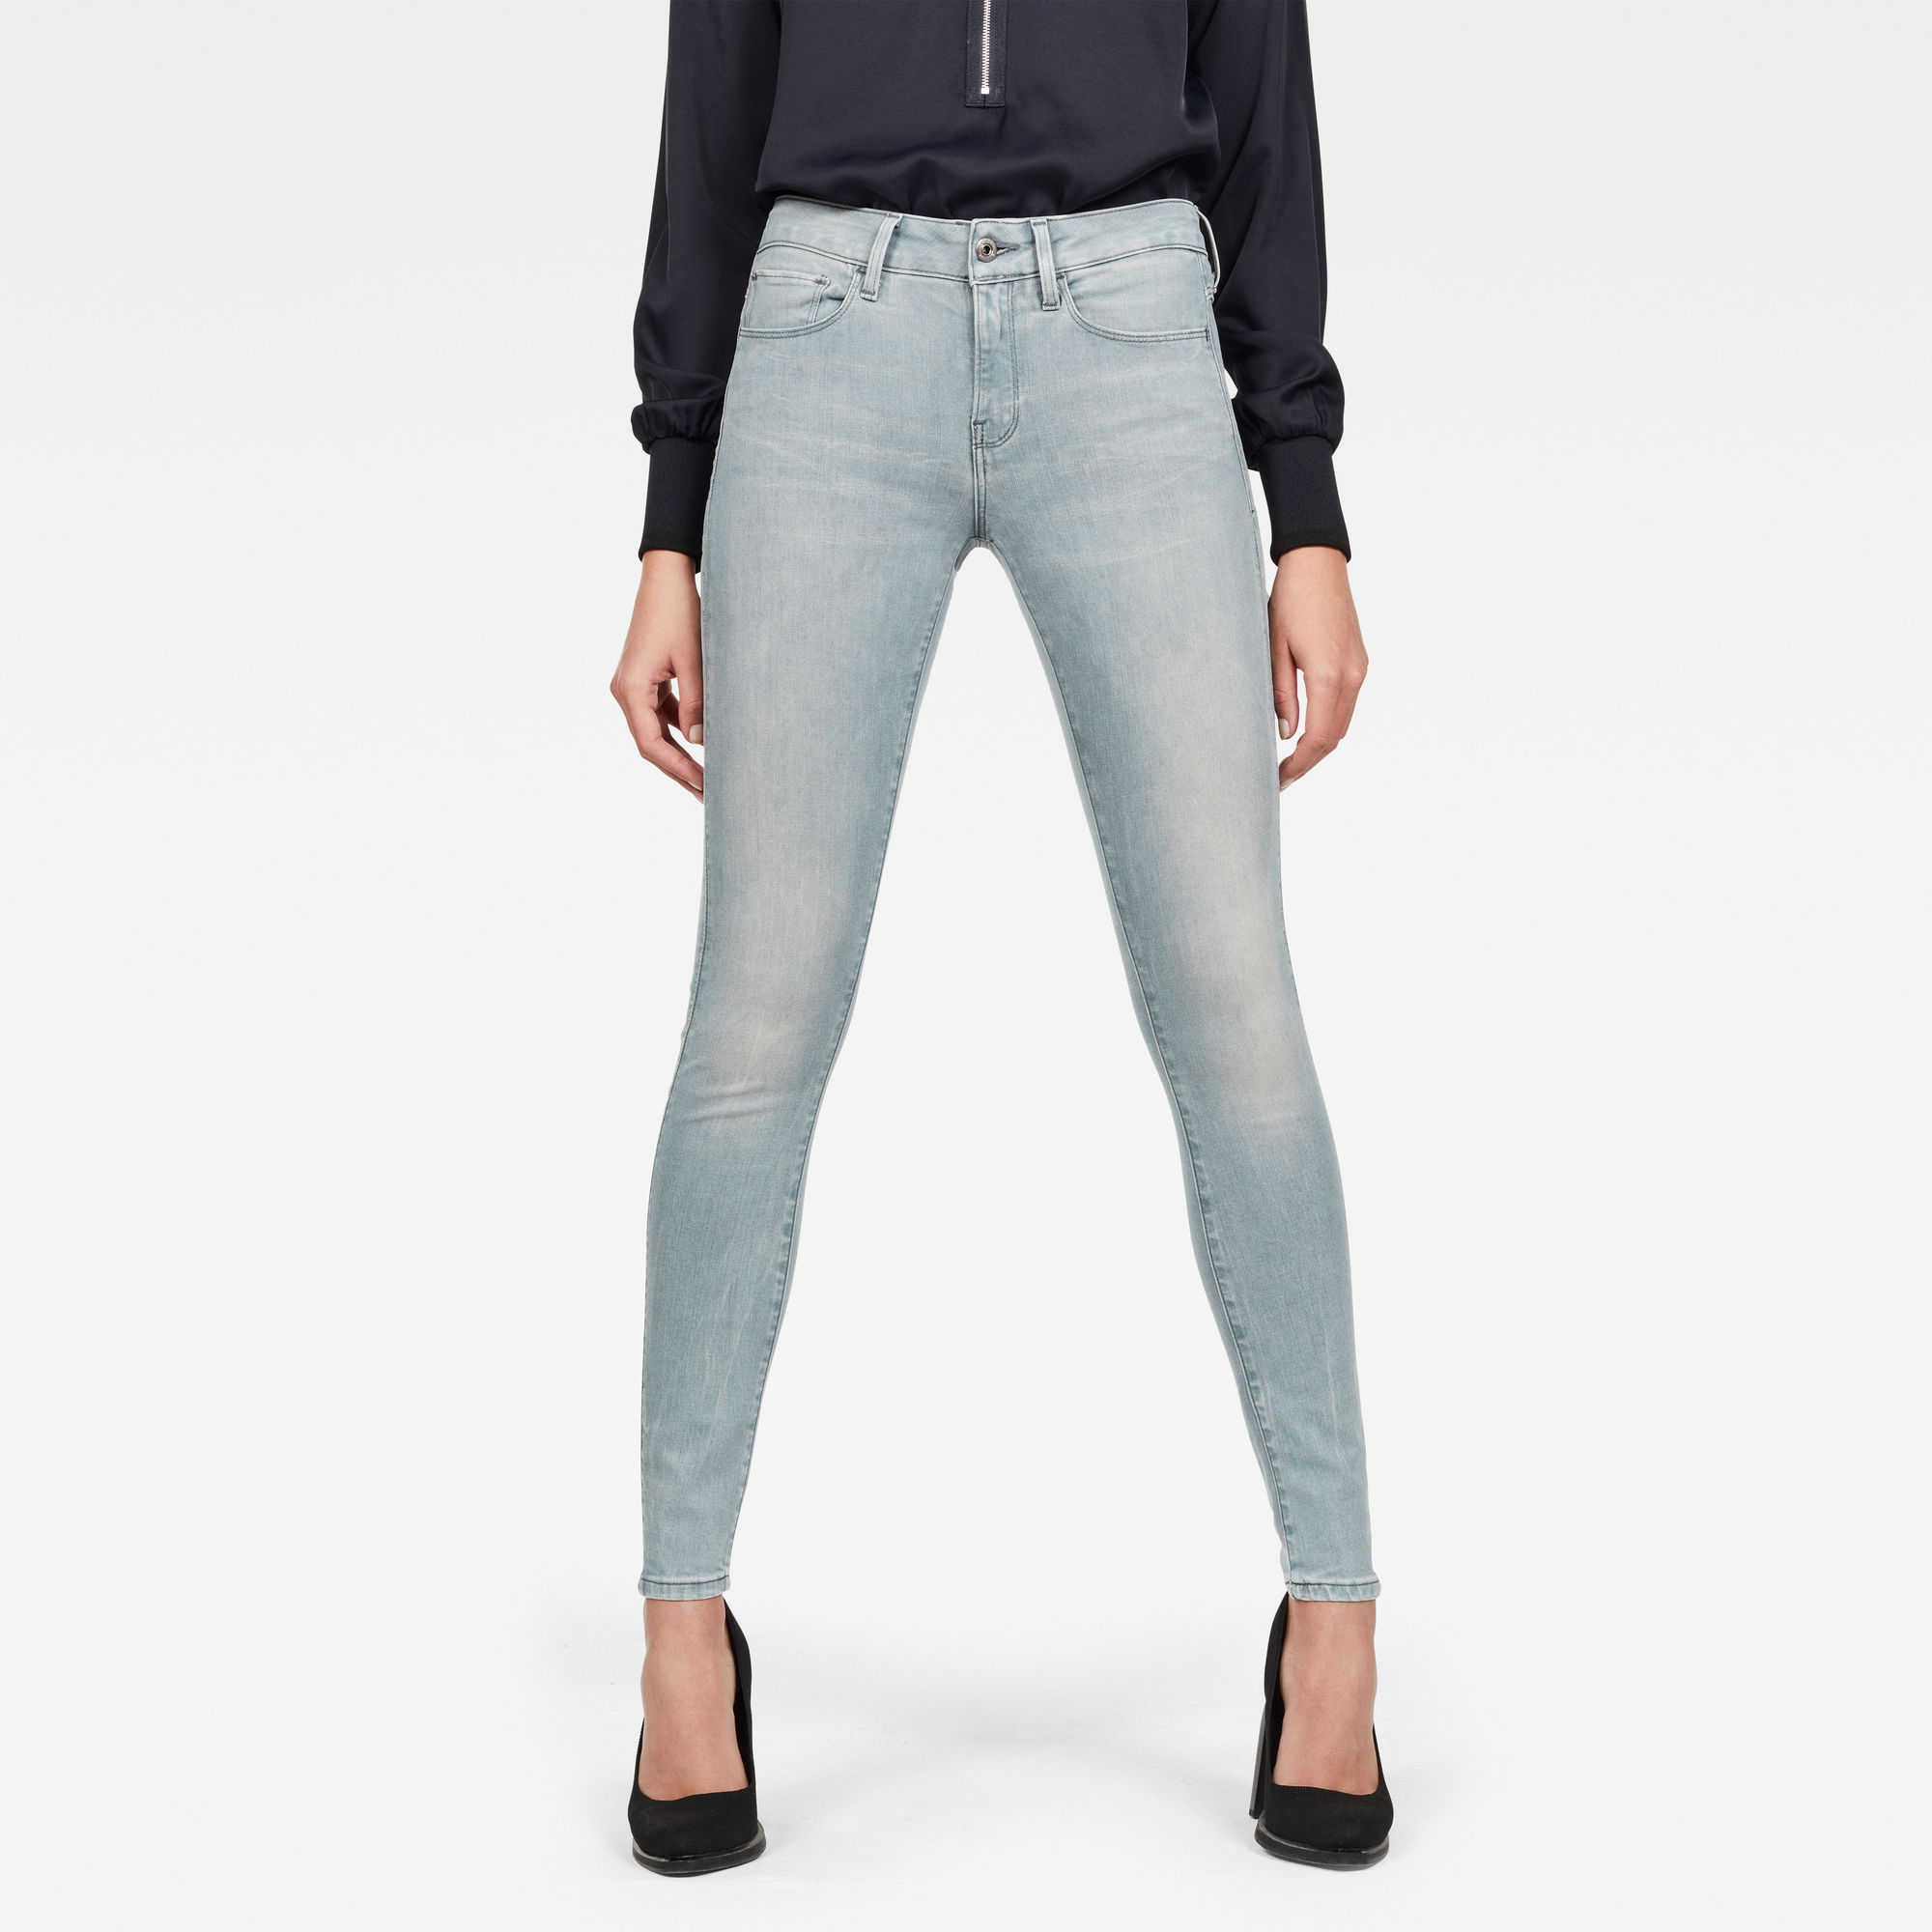 Image of G Star Raw 3301 Deconstructed Mid Waist Skinny Jeans